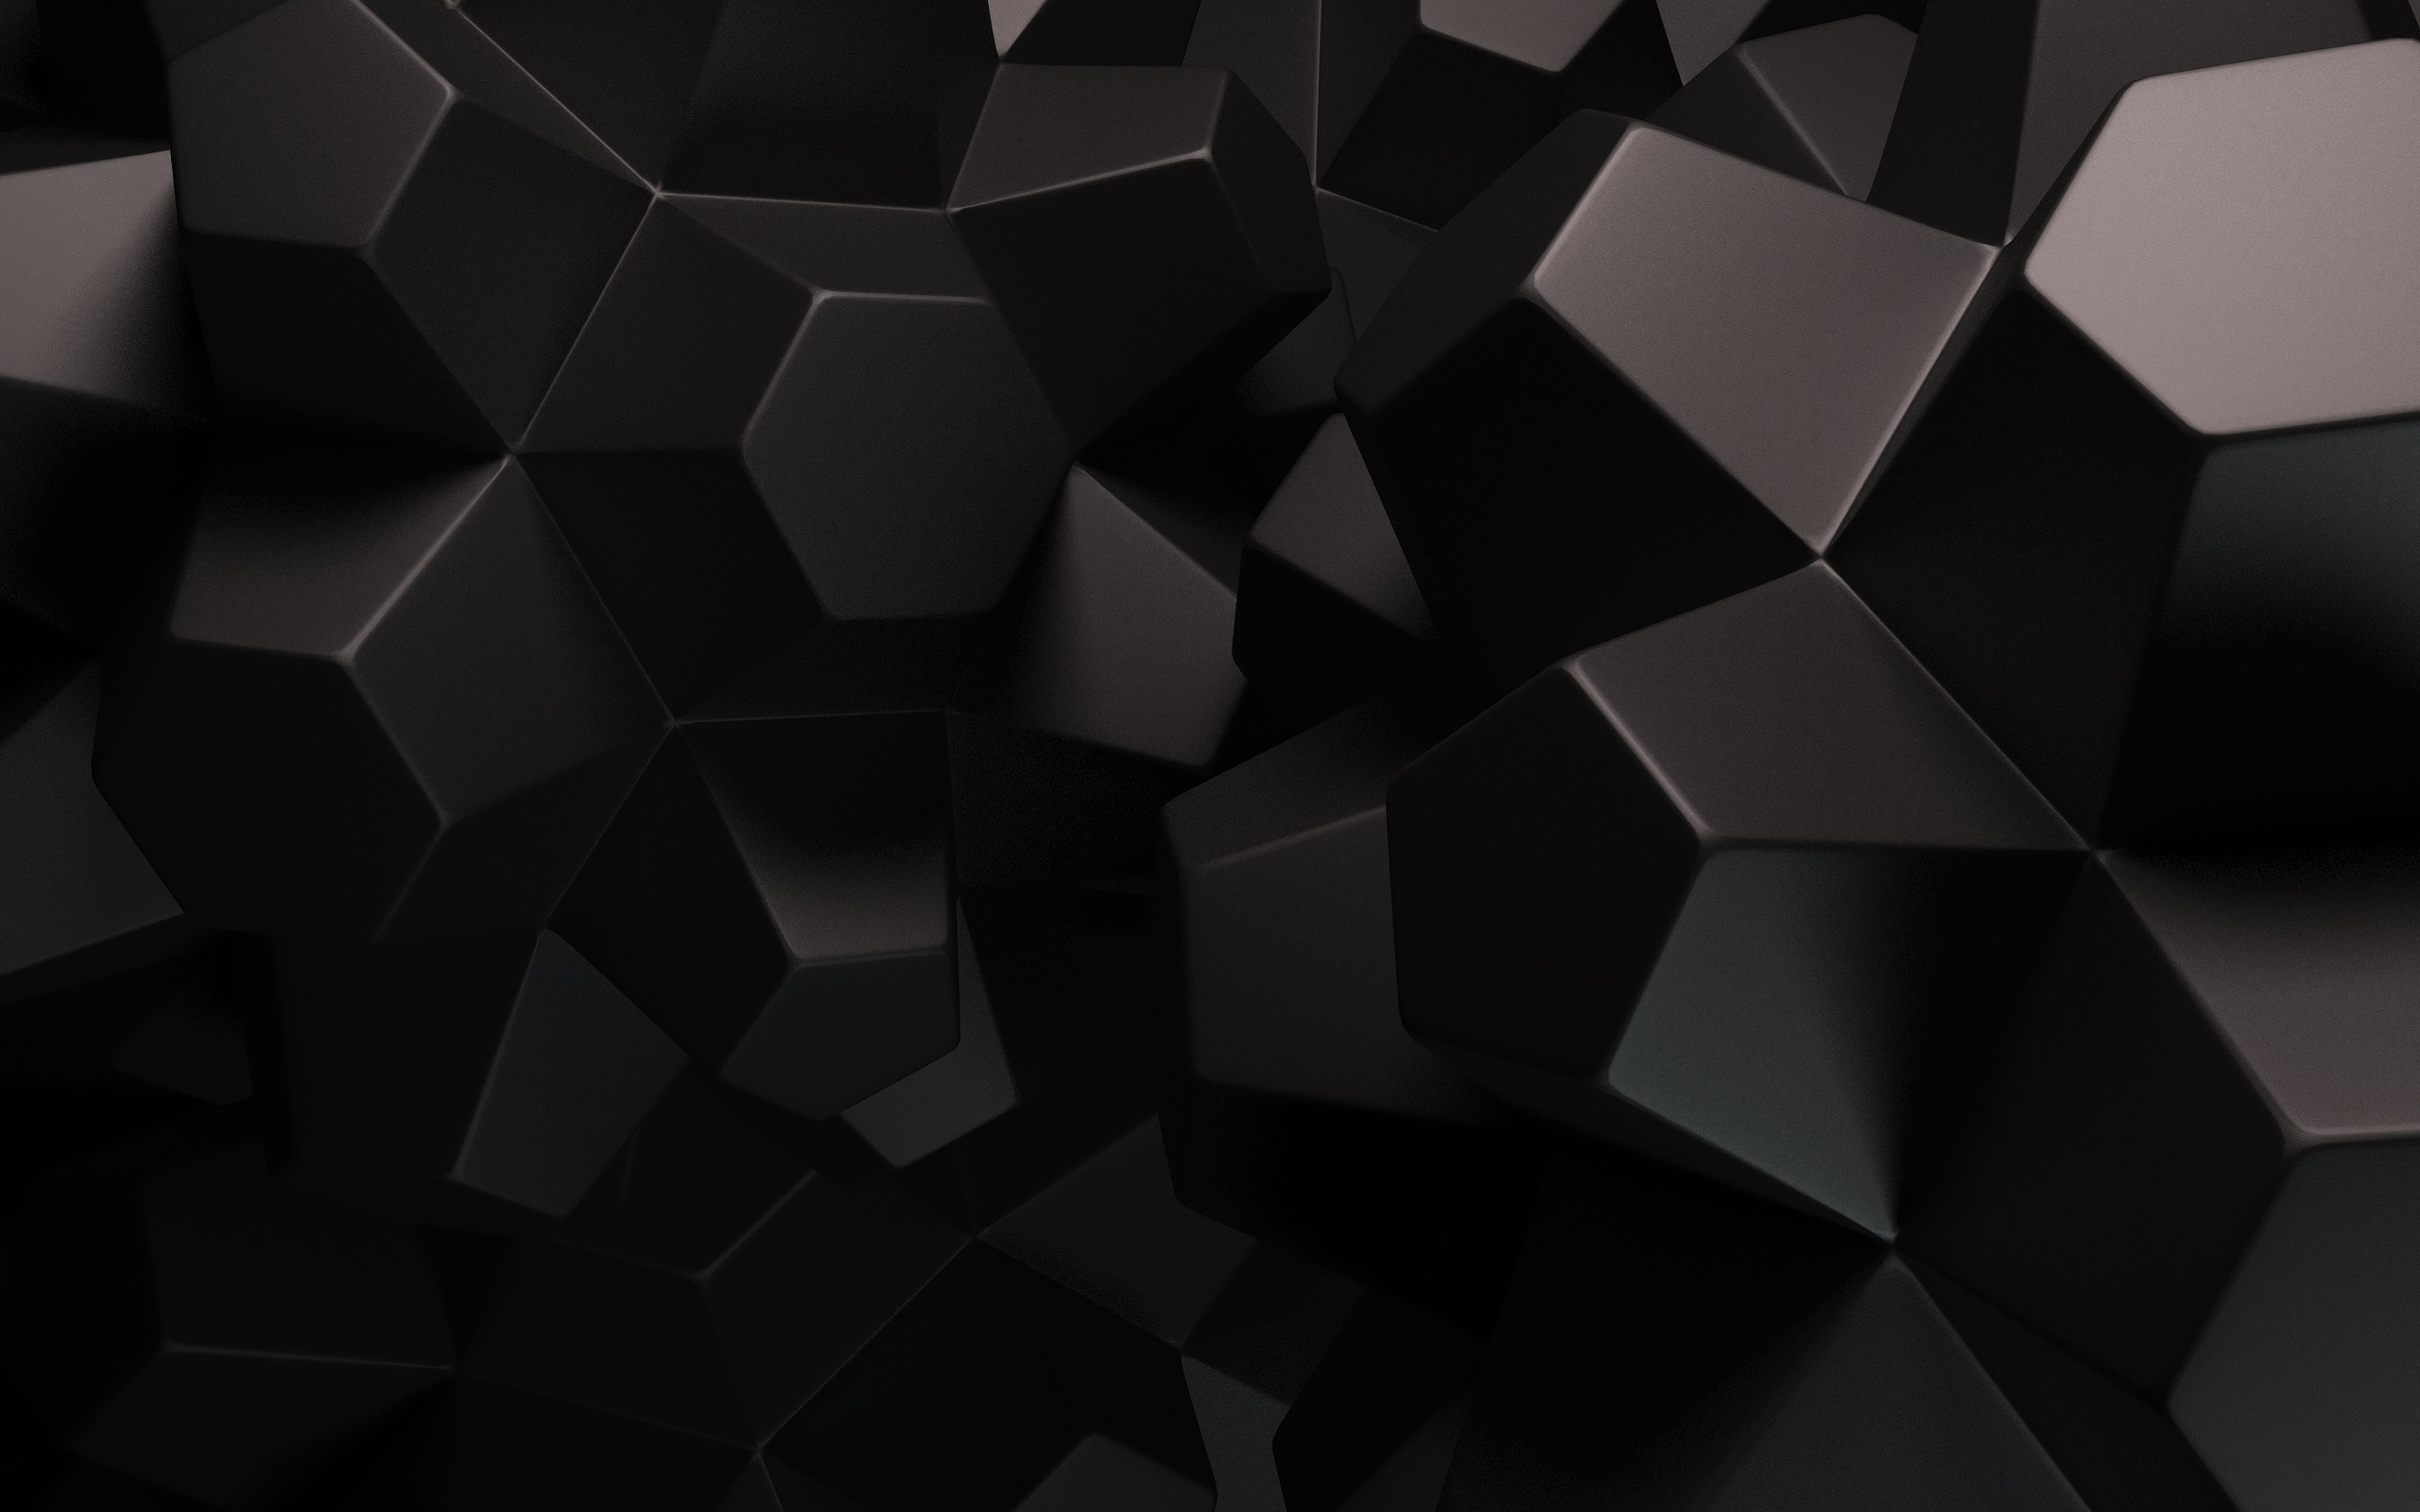 2560x1600 Abstract Black Shapes desktop PC and Mac wallpaper 2560x1600